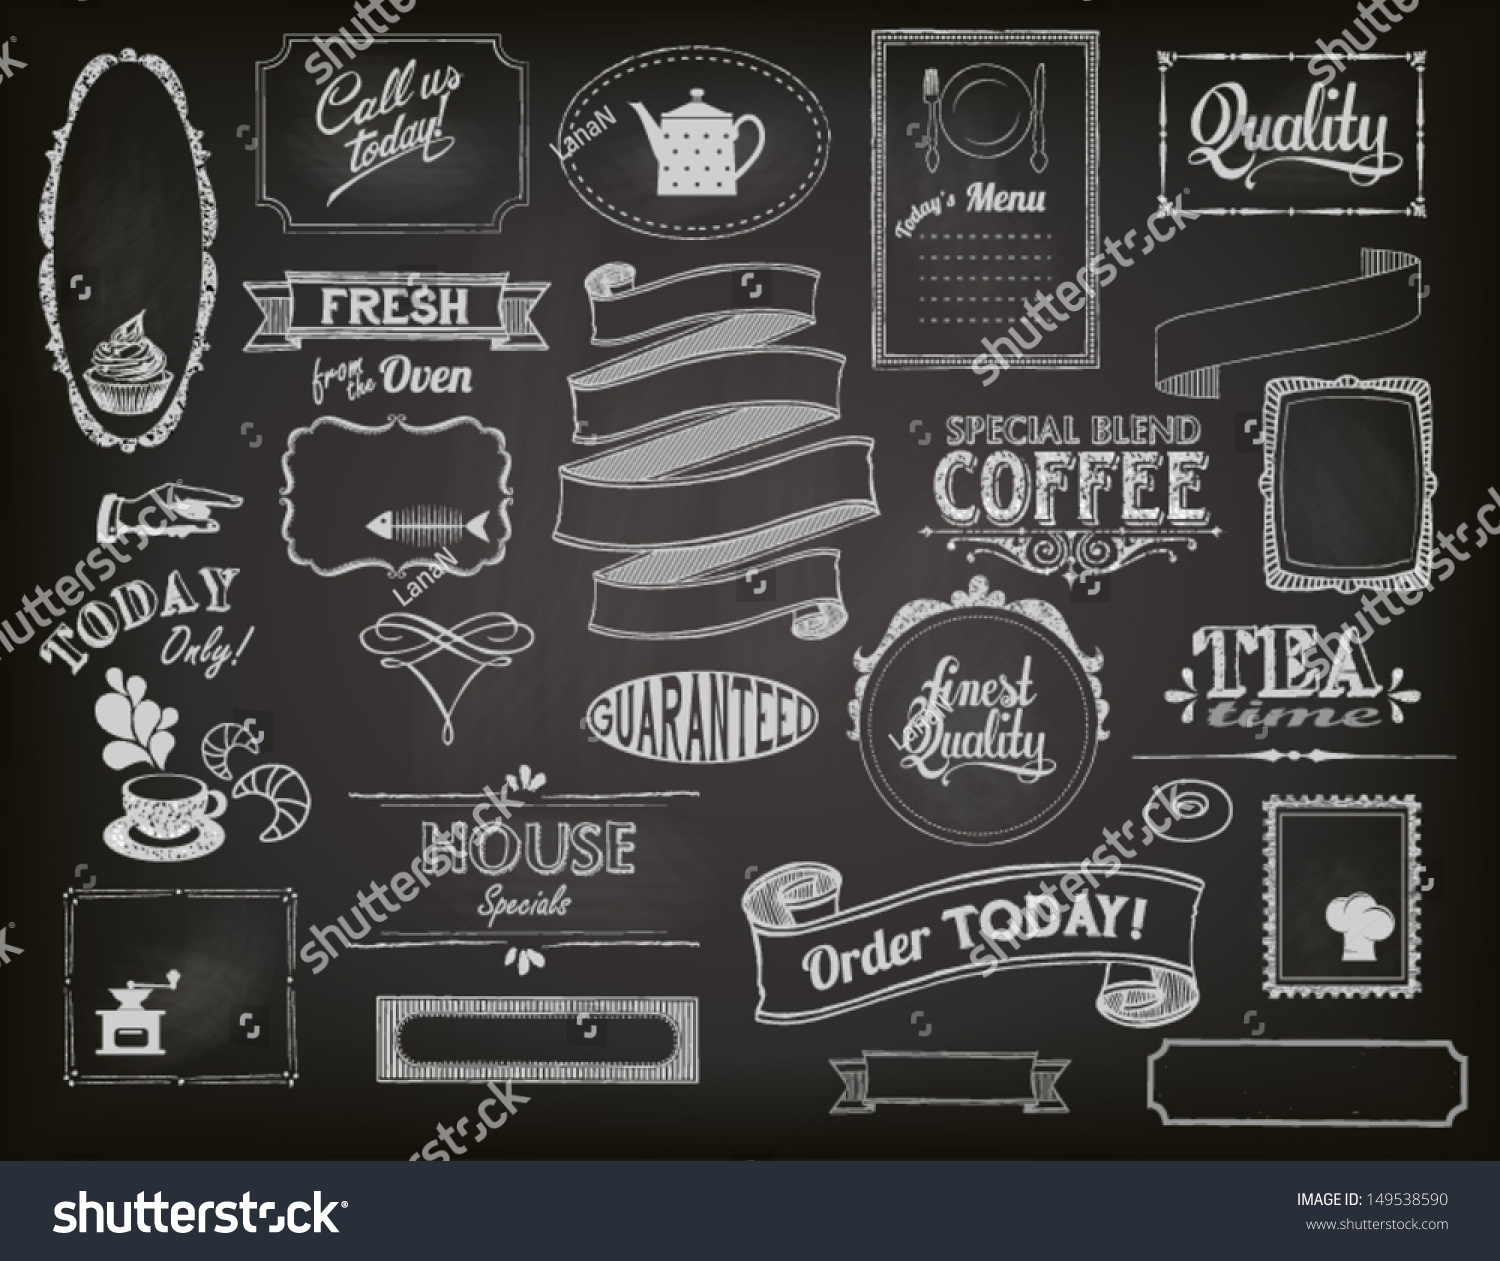 Chalkboard Ads Including Frames Banners Swirls Stock Vector ...